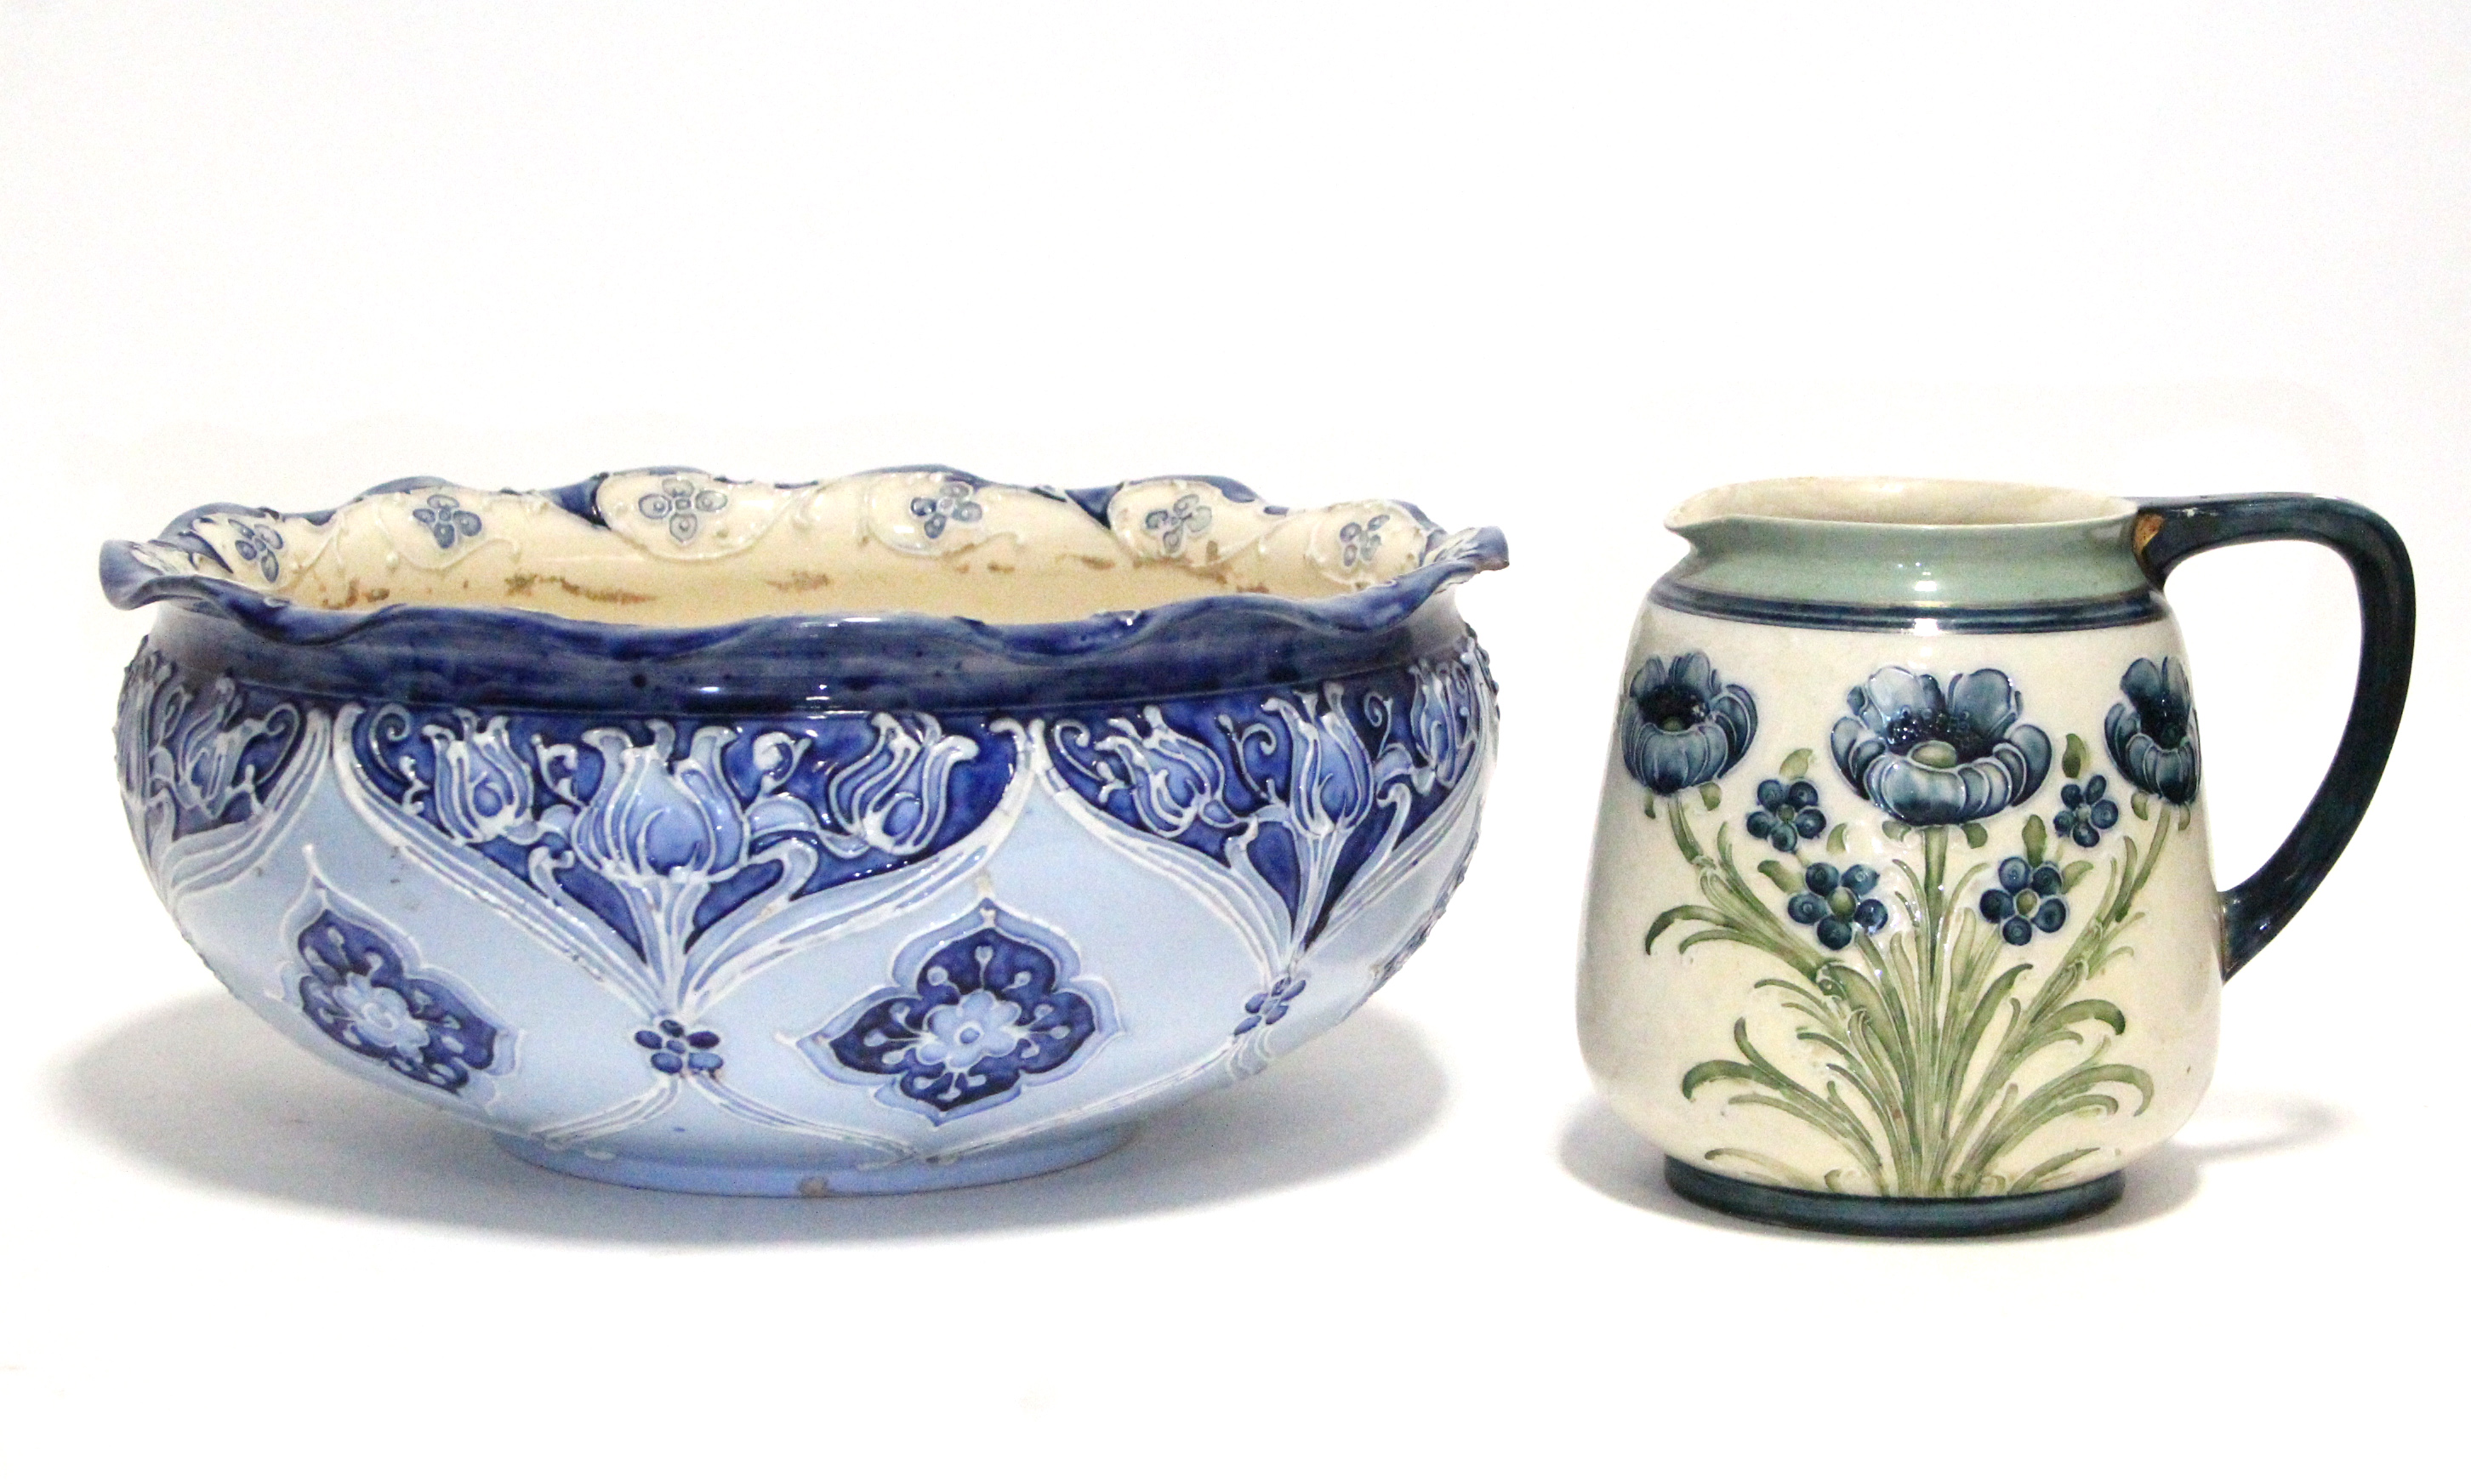 Lot 169 - A MacIntyre Florian Ware circular shallow bowl decorated in shades of blue with stylised tulips,